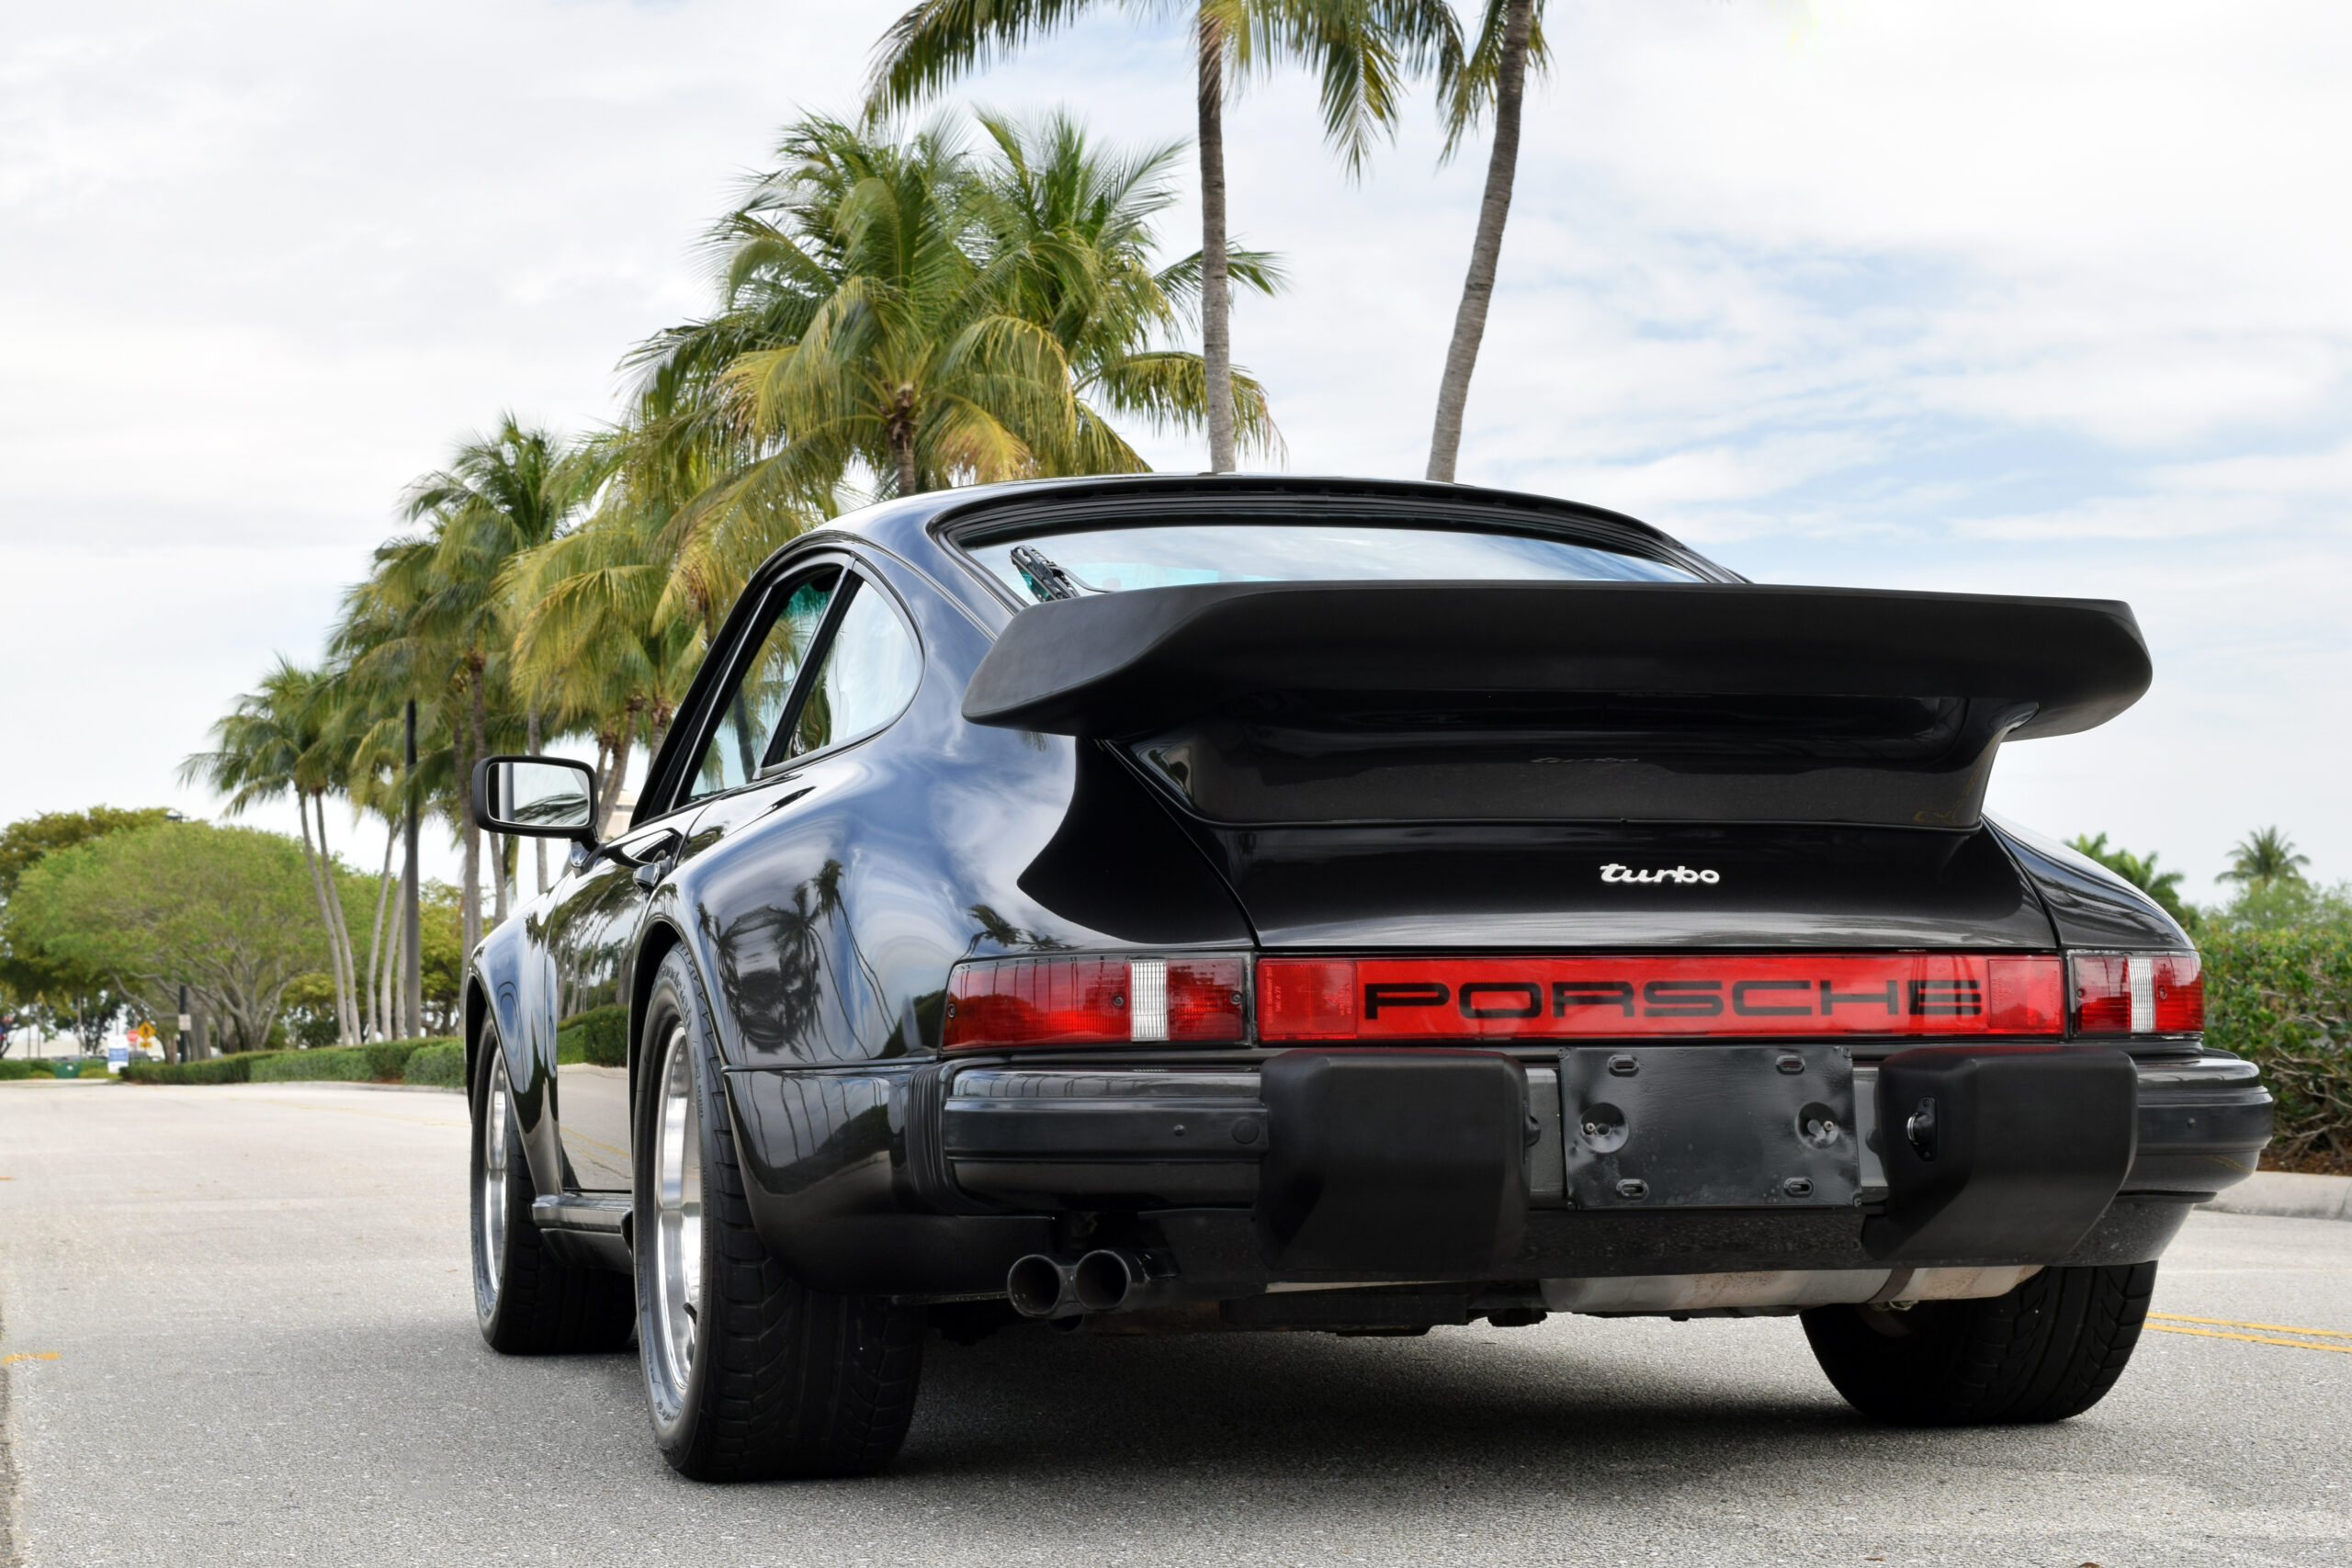 1979 Turbo 930, 1300 miles since $58K glass out restoration, impressive paint and interior, upgraded a/c